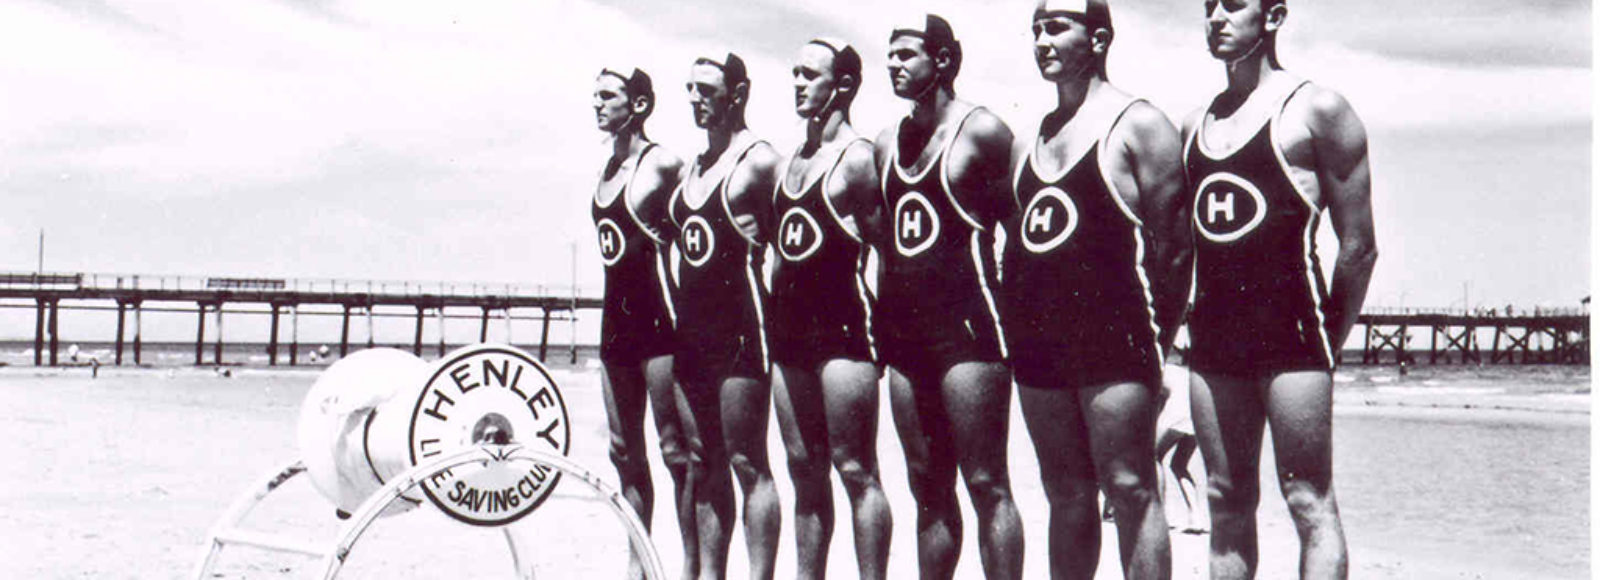 Image: six life savers standing in a row on a beach